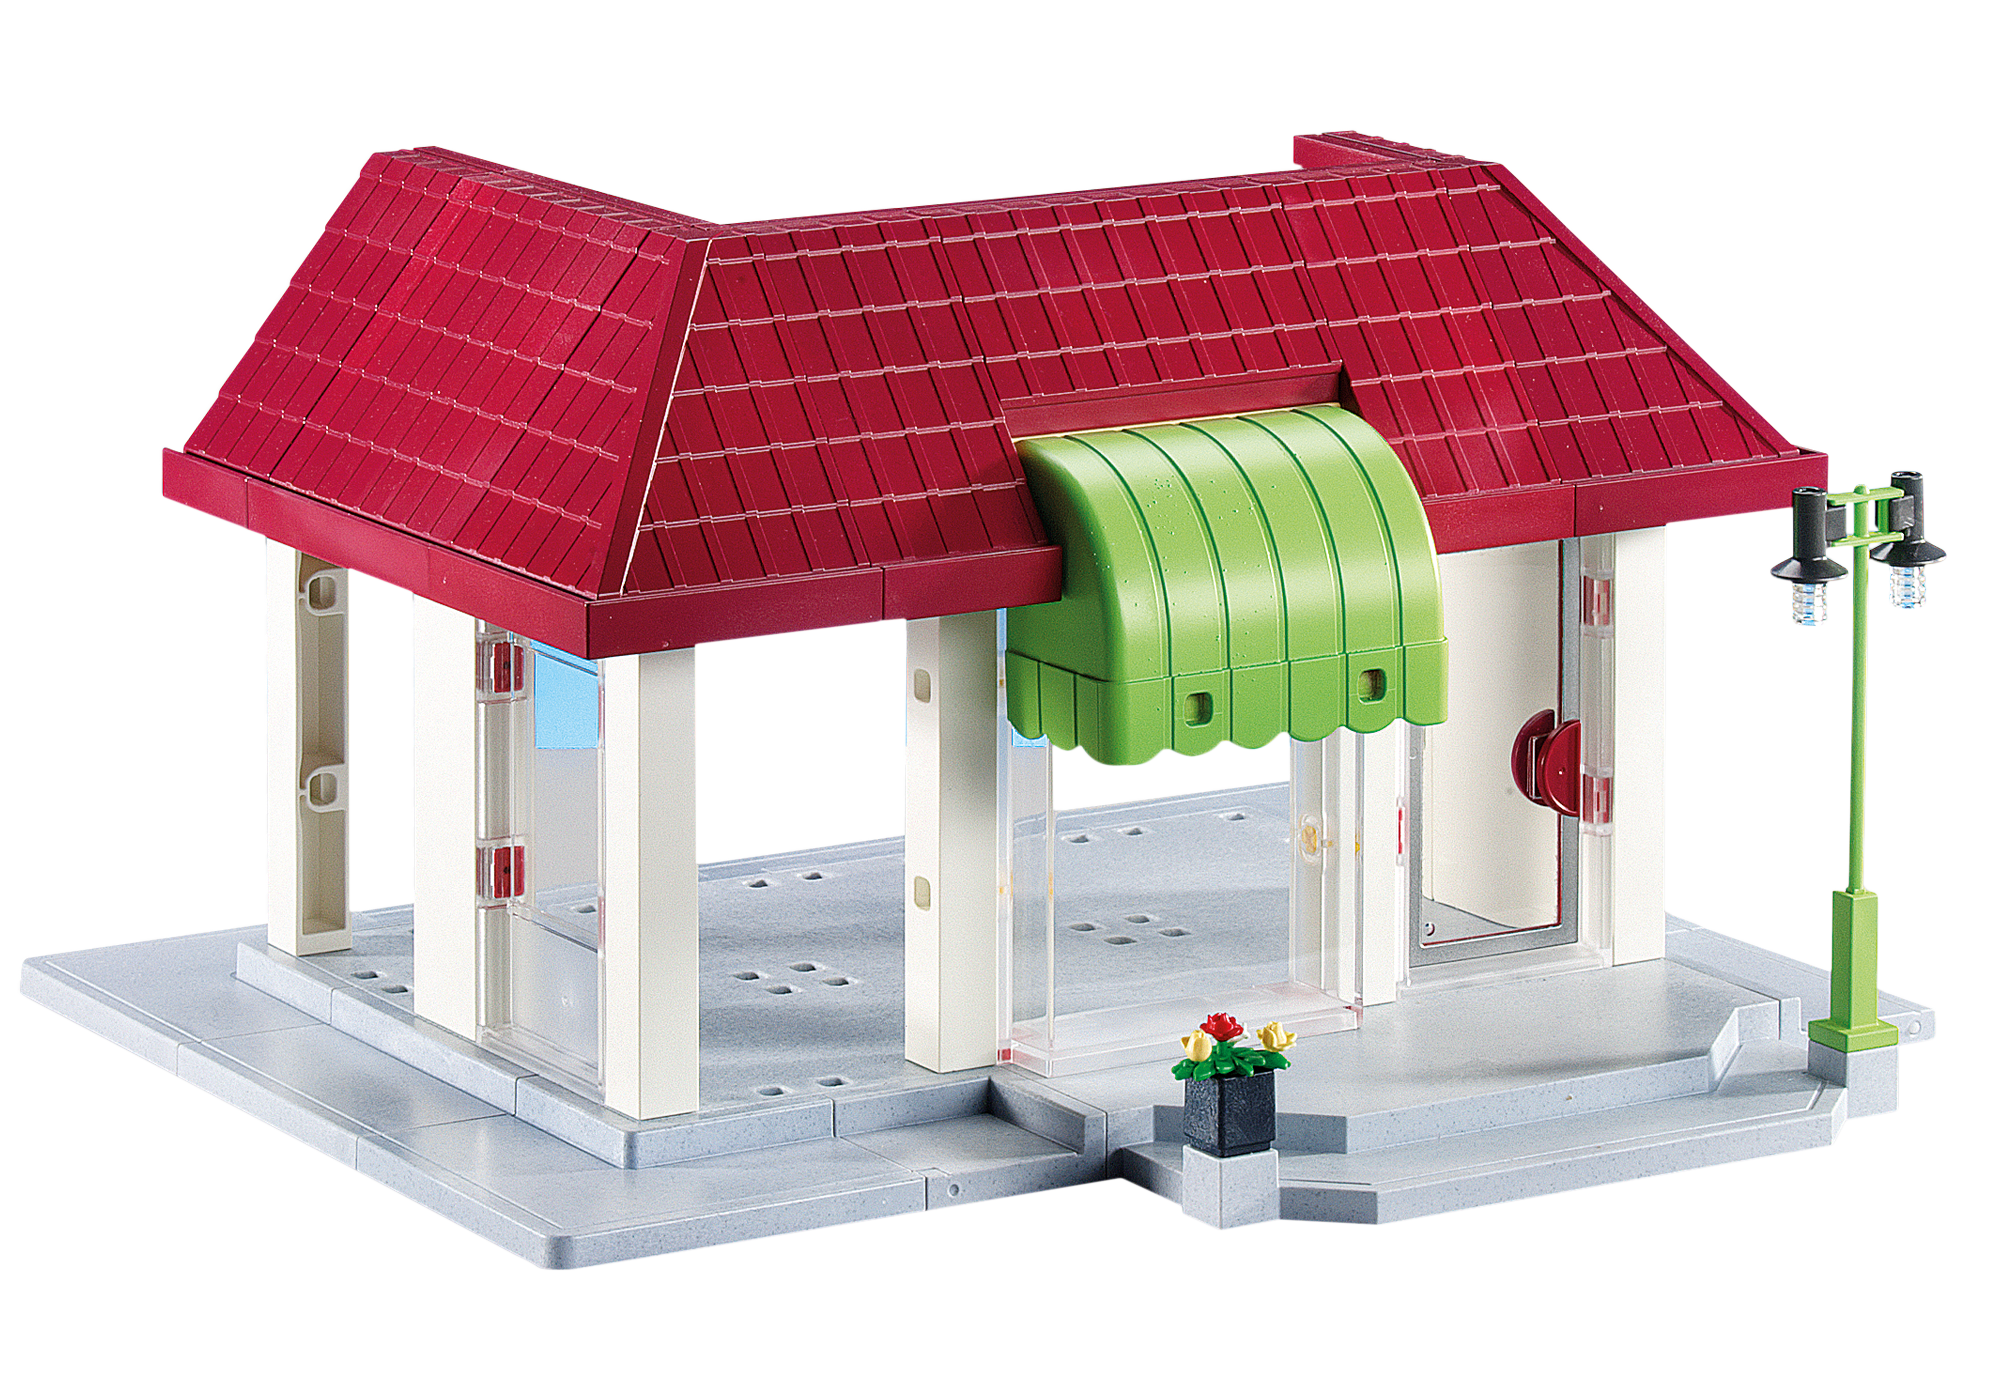 http://media.playmobil.com/i/playmobil/6220_product_detail/Store with Awning